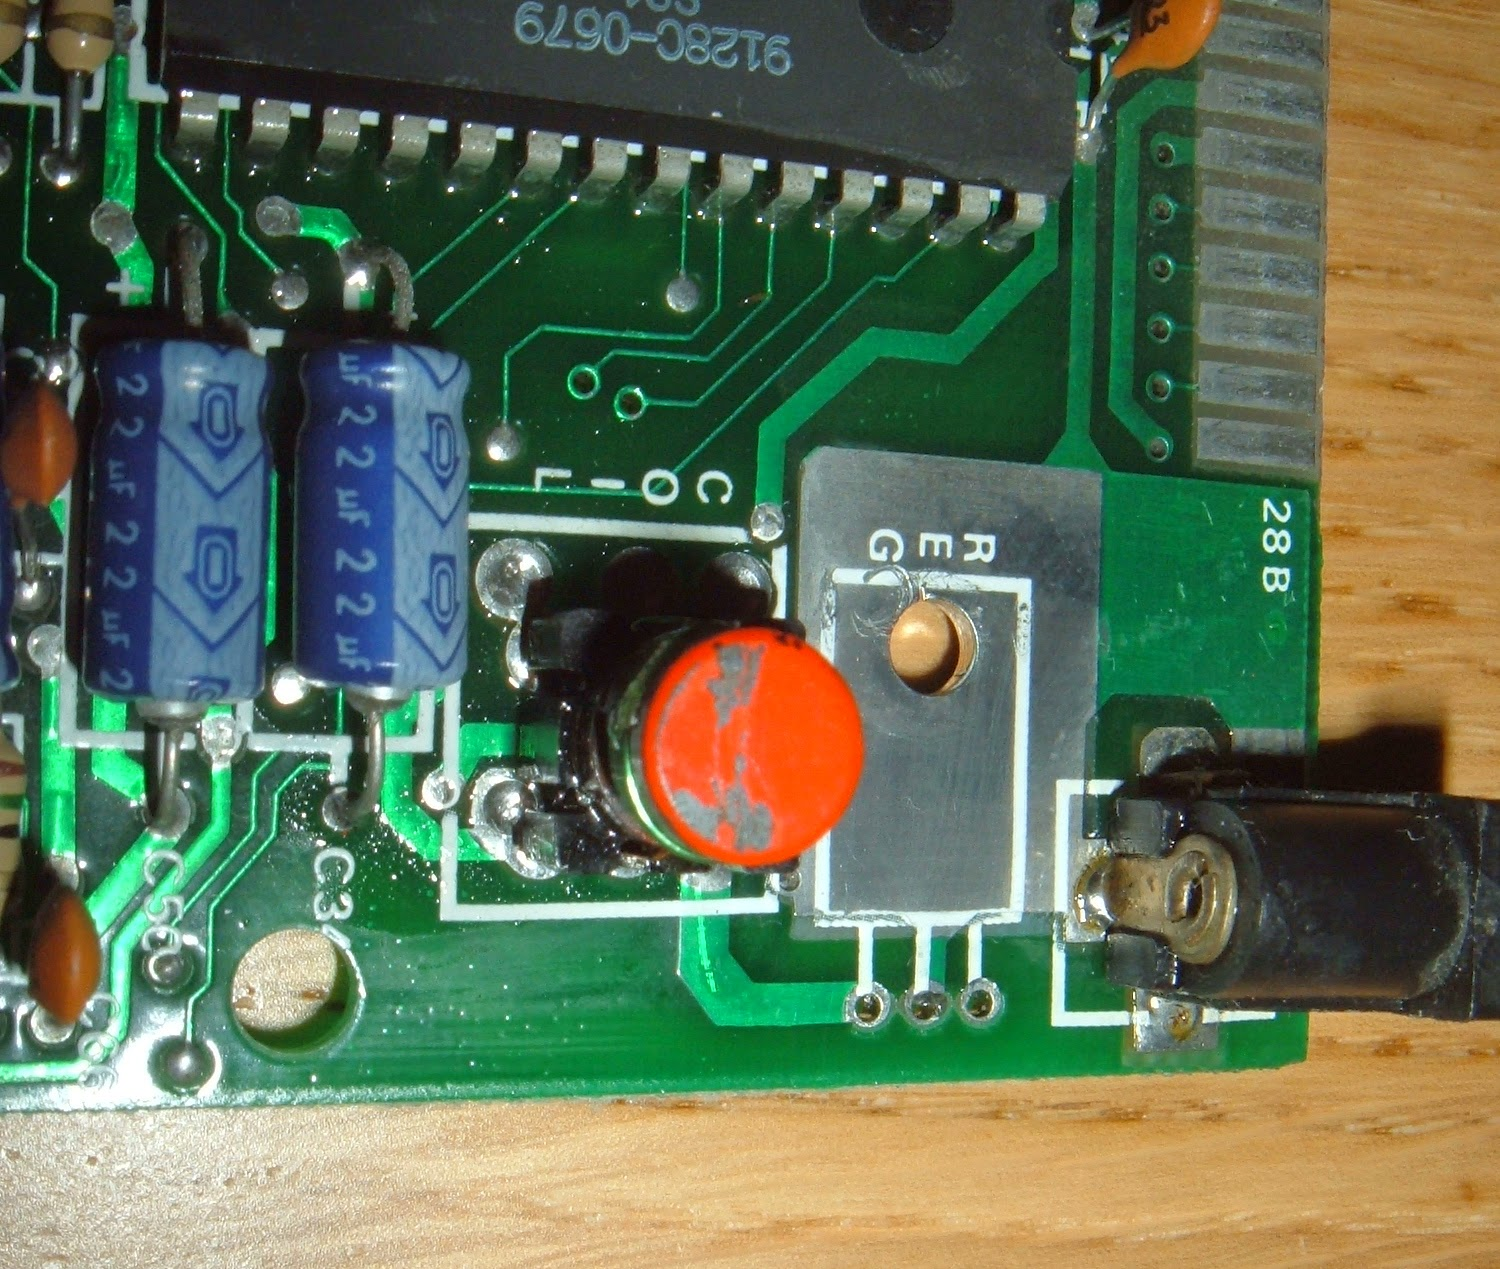 Tynemouth Software Zx Spectrum Voltage Regulator Replacement 7805 Circuits Google Search 12v 1a To Get 5v Tsr1 2450 400ma The Same That Used About 650ma Dropped With New